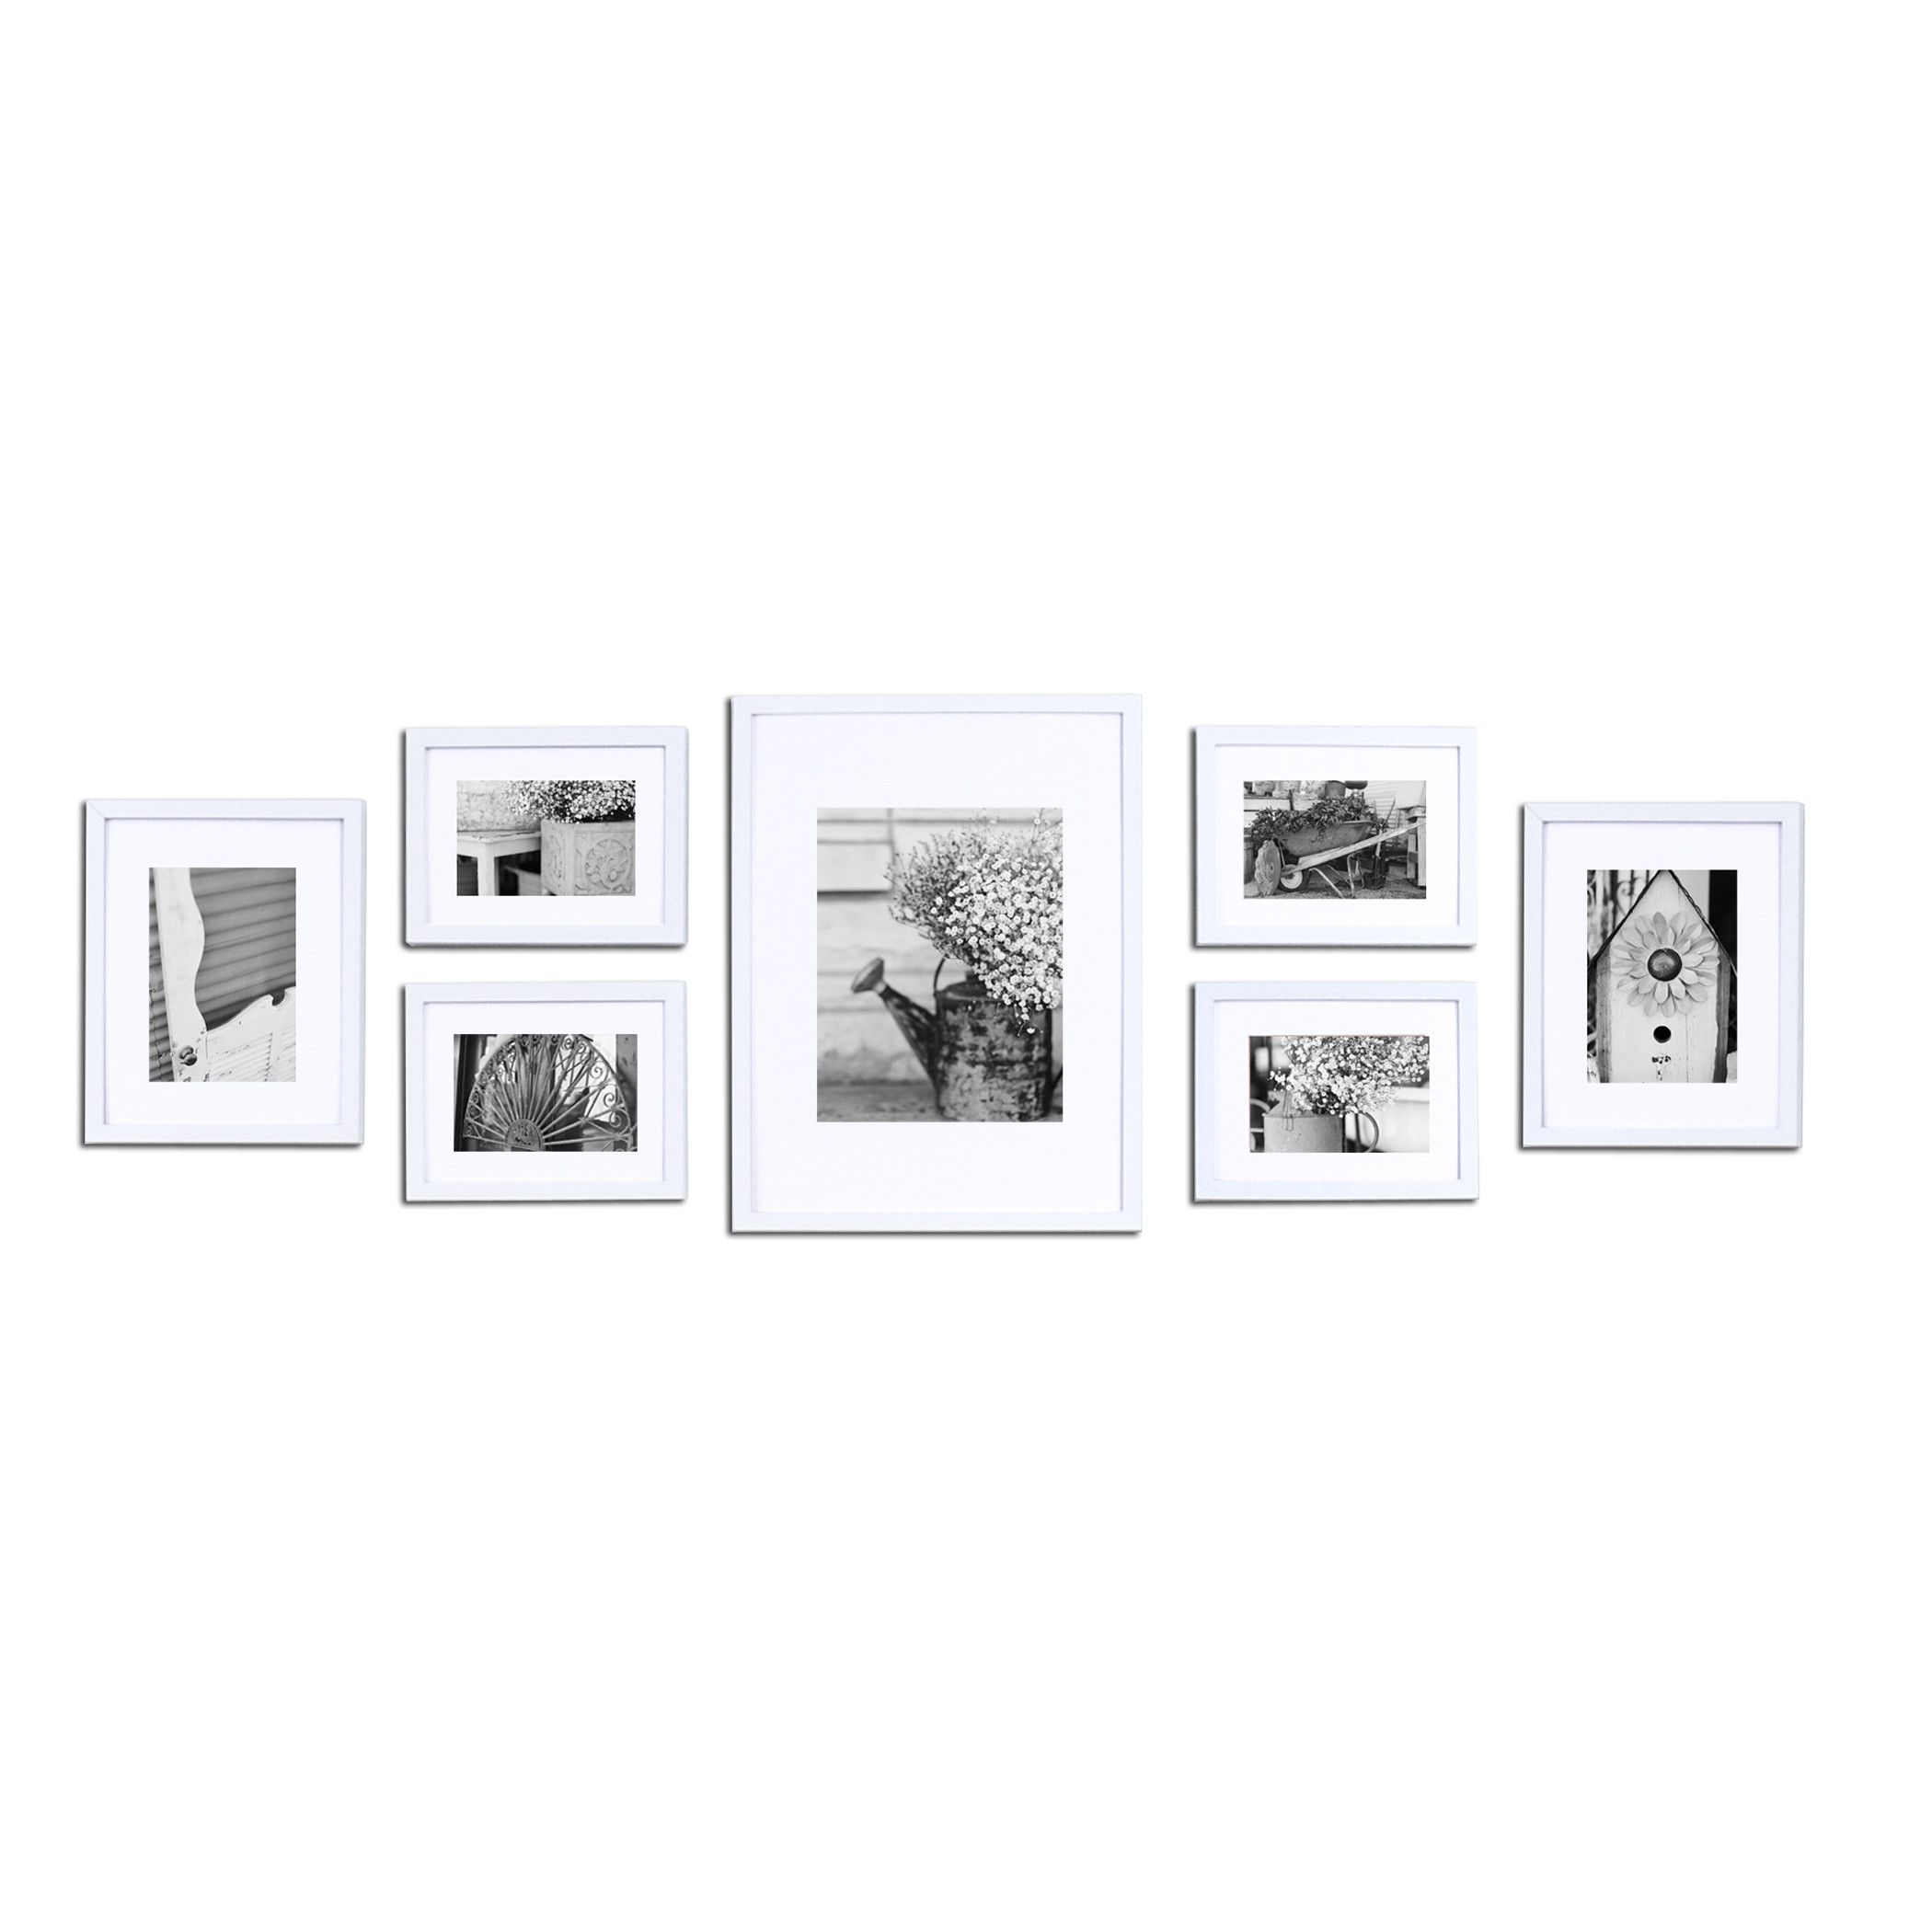 Nielsen bainbridge gallery 7 piece perfect wall picture frame set nielsen bainbridge gallery 7 piece perfect wall picture frame set jeuxipadfo Image collections